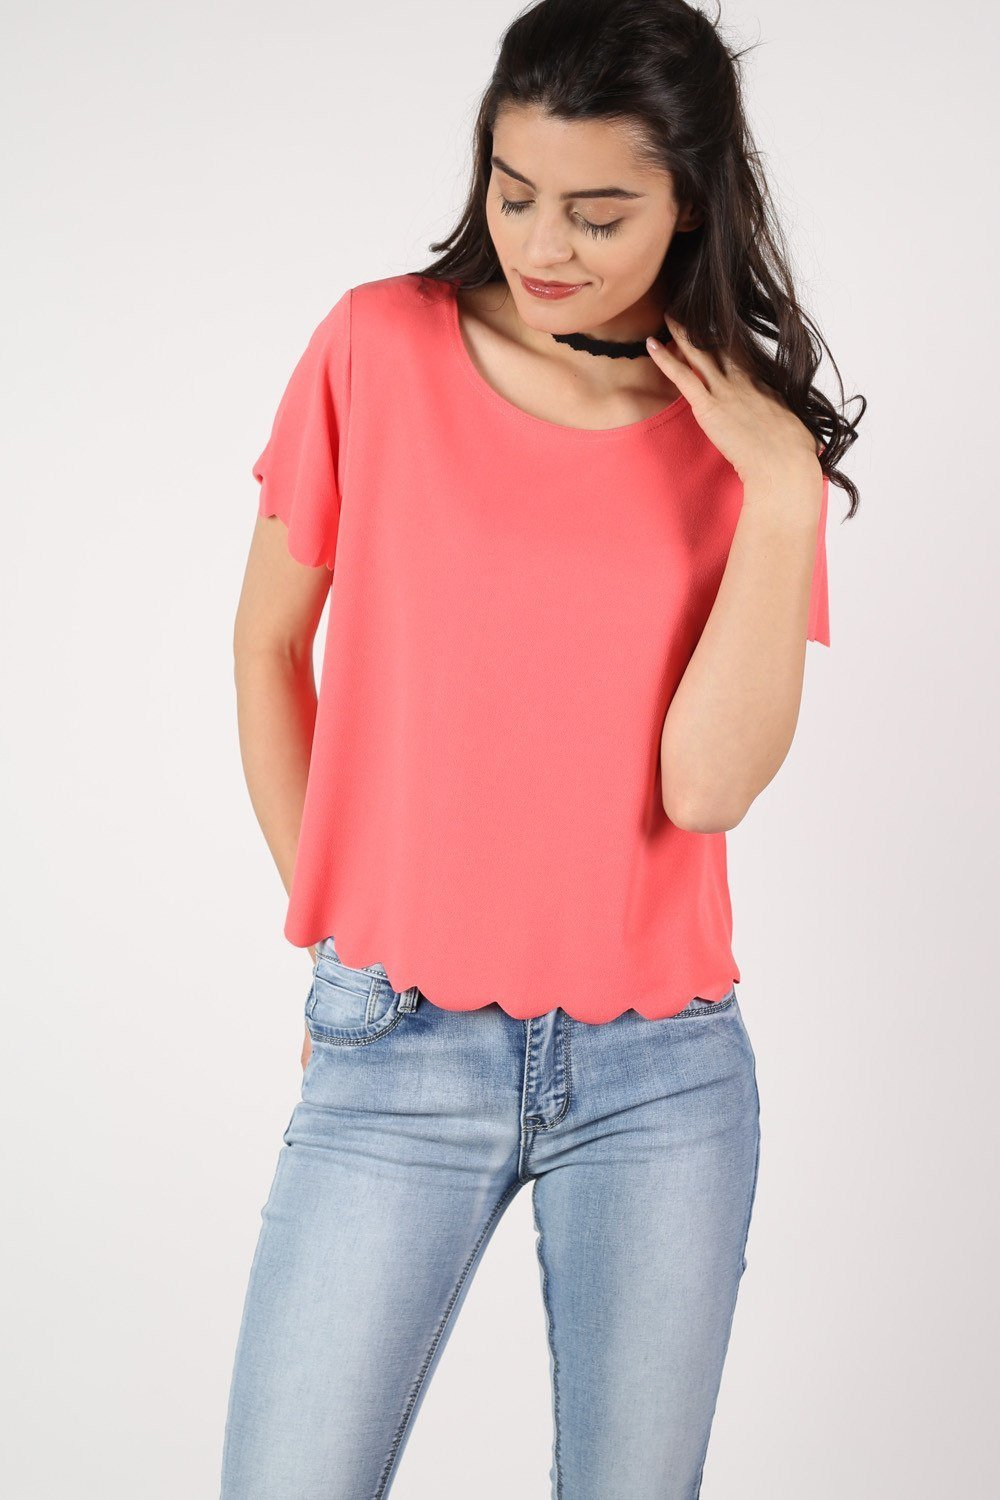 Crepe Scallop Edge Cap Sleeve Top in Coral 0